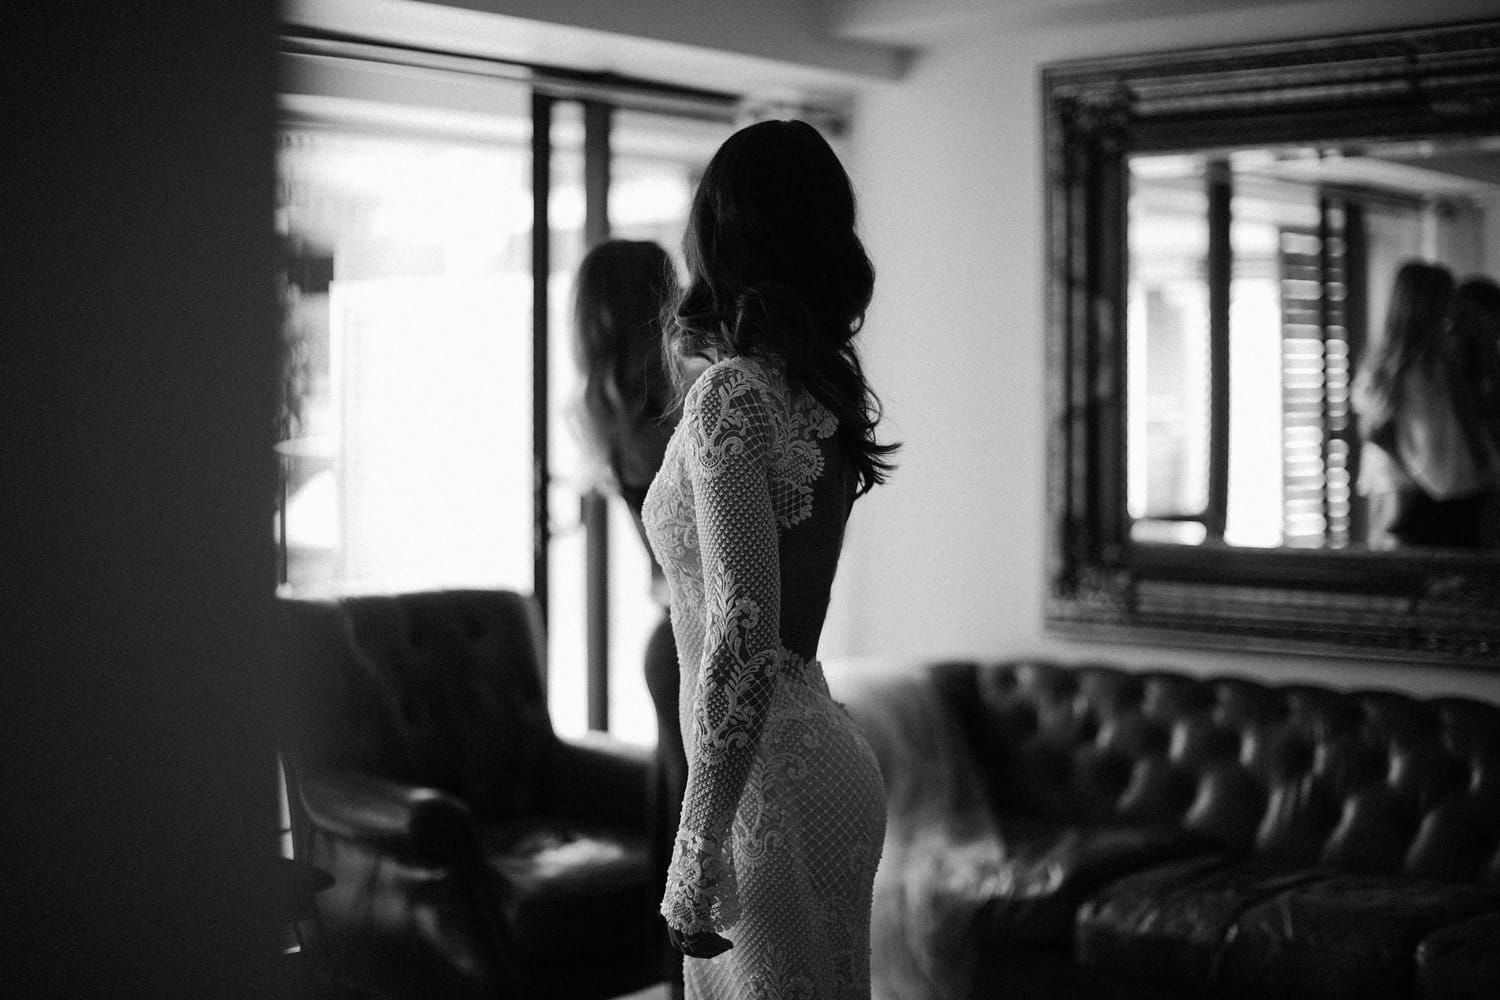 Real Weddings | Vinka Design | Real Brides Wearing Vinka Gowns | Nicole and Hayden - Nicole looking at back of bespoke dress in mirror in black and white